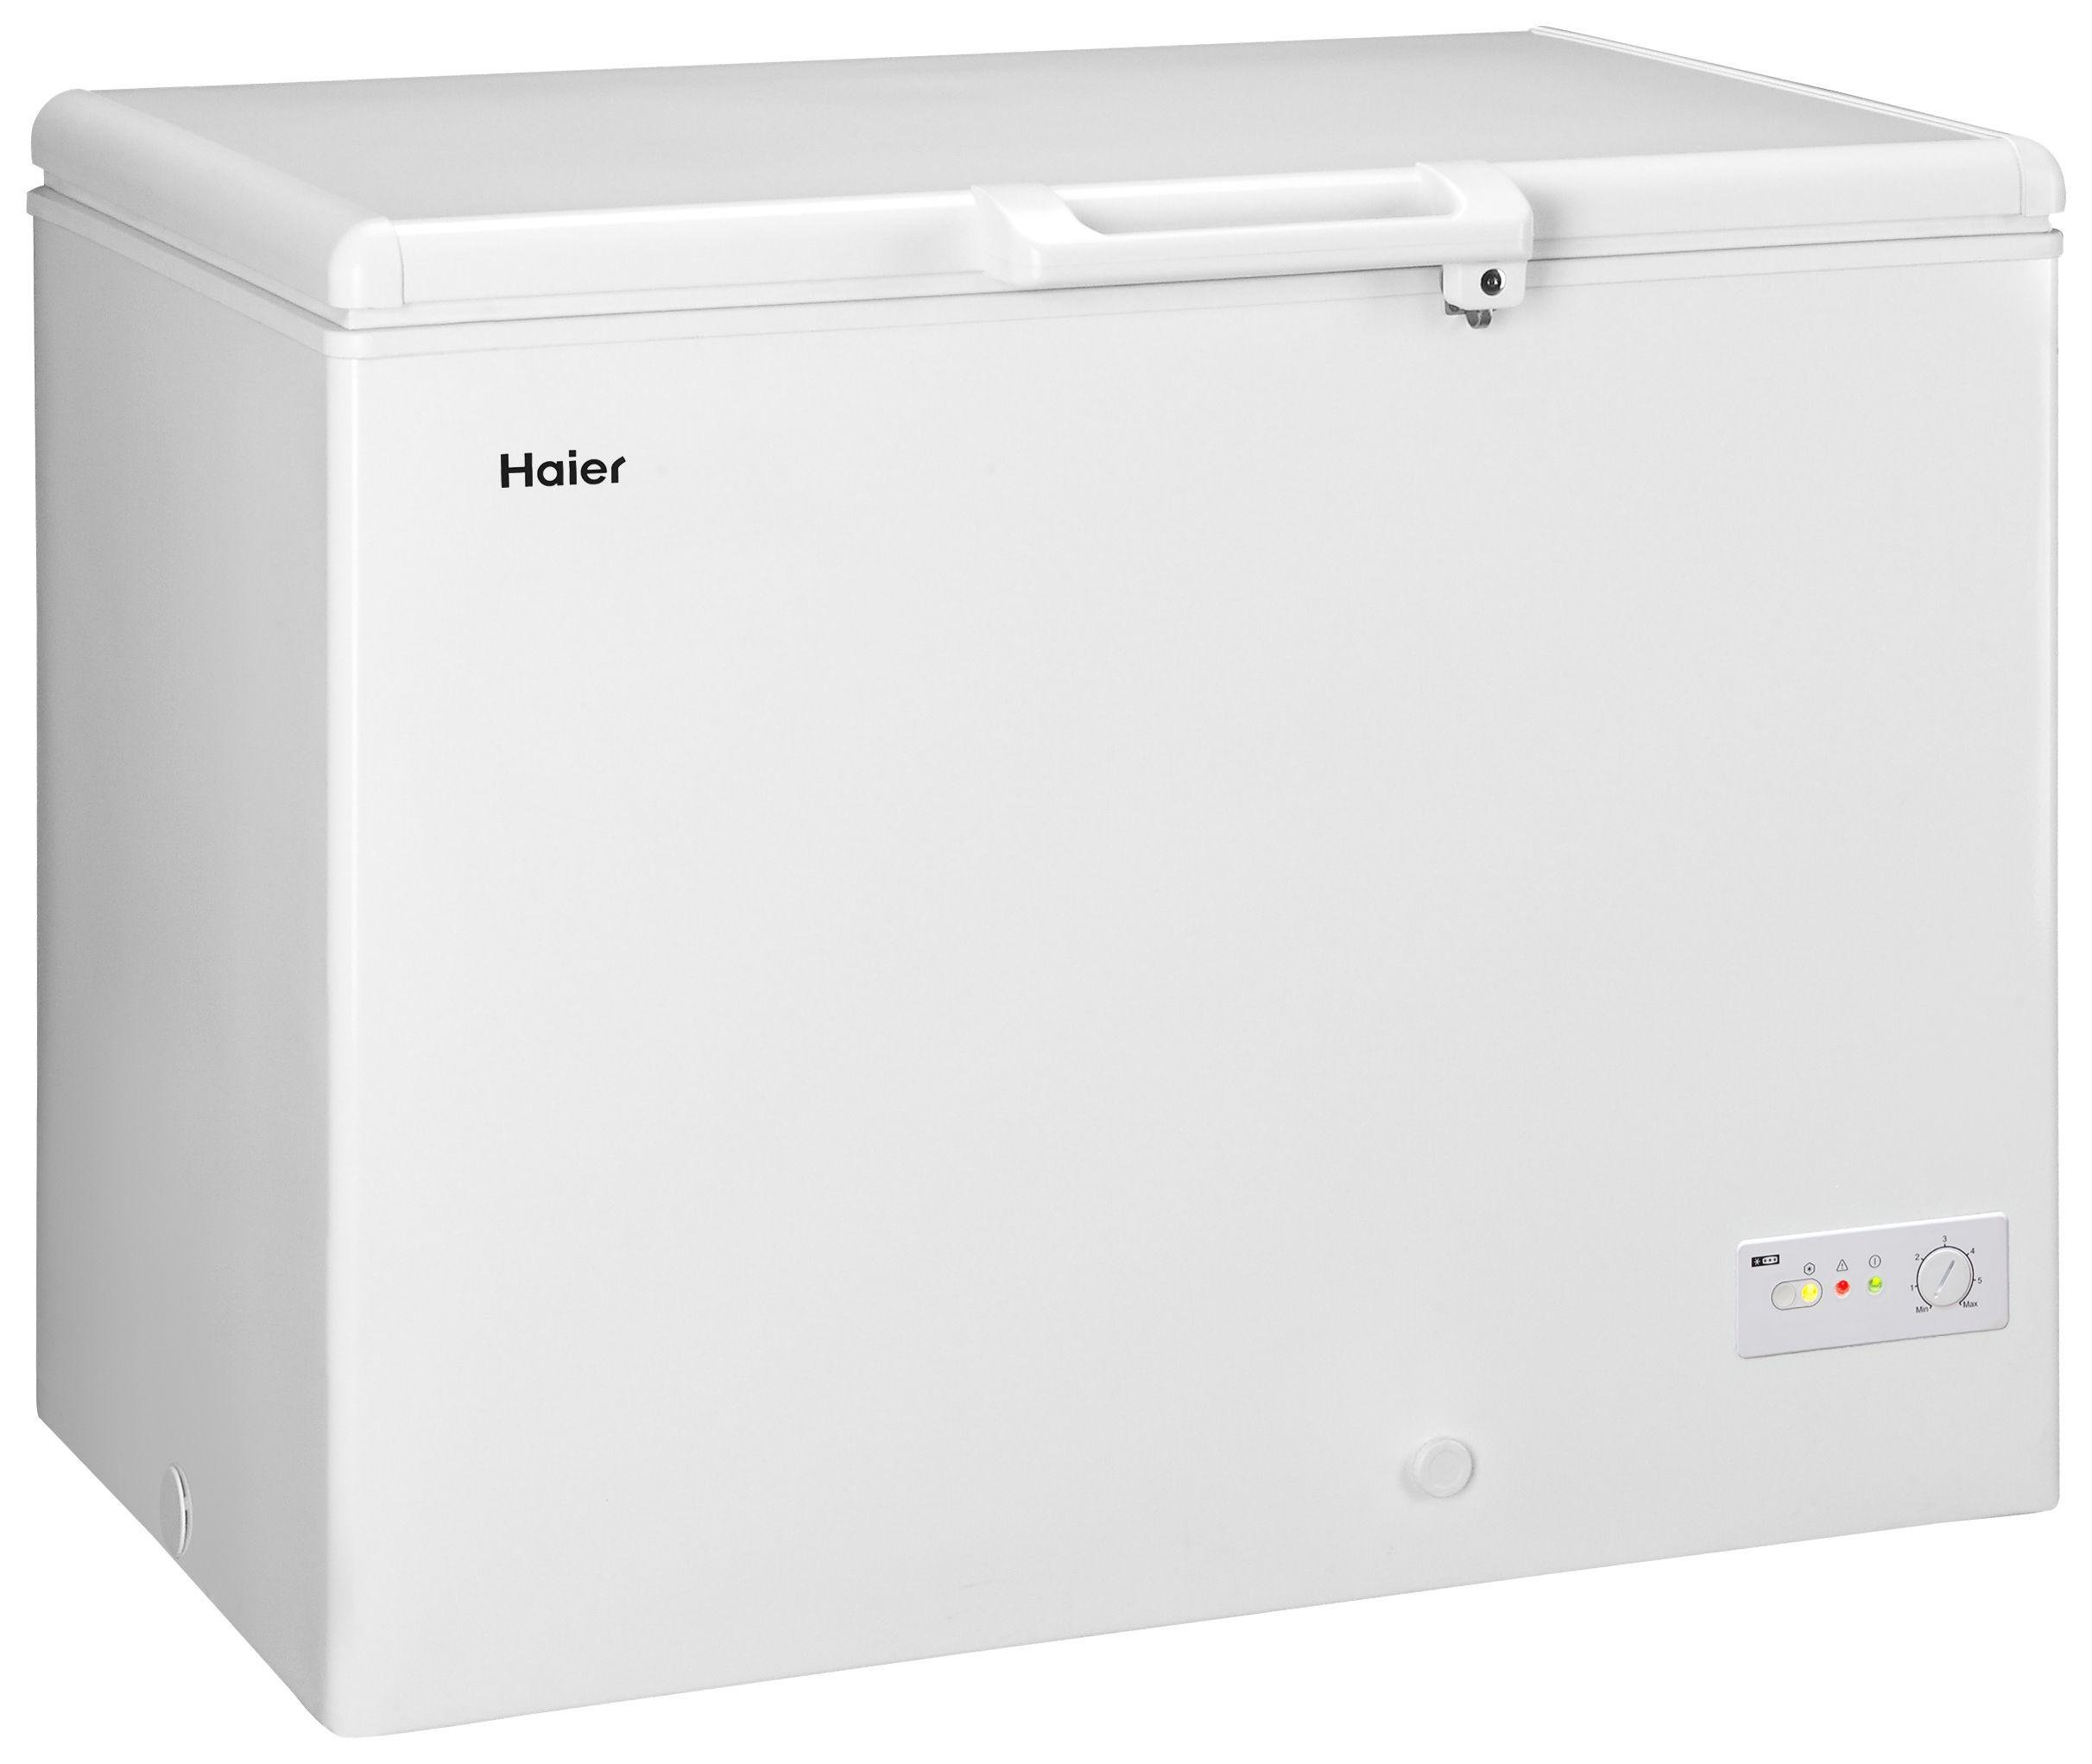 Image of Haier BD-319RAA Chest Freezer - White With Installation